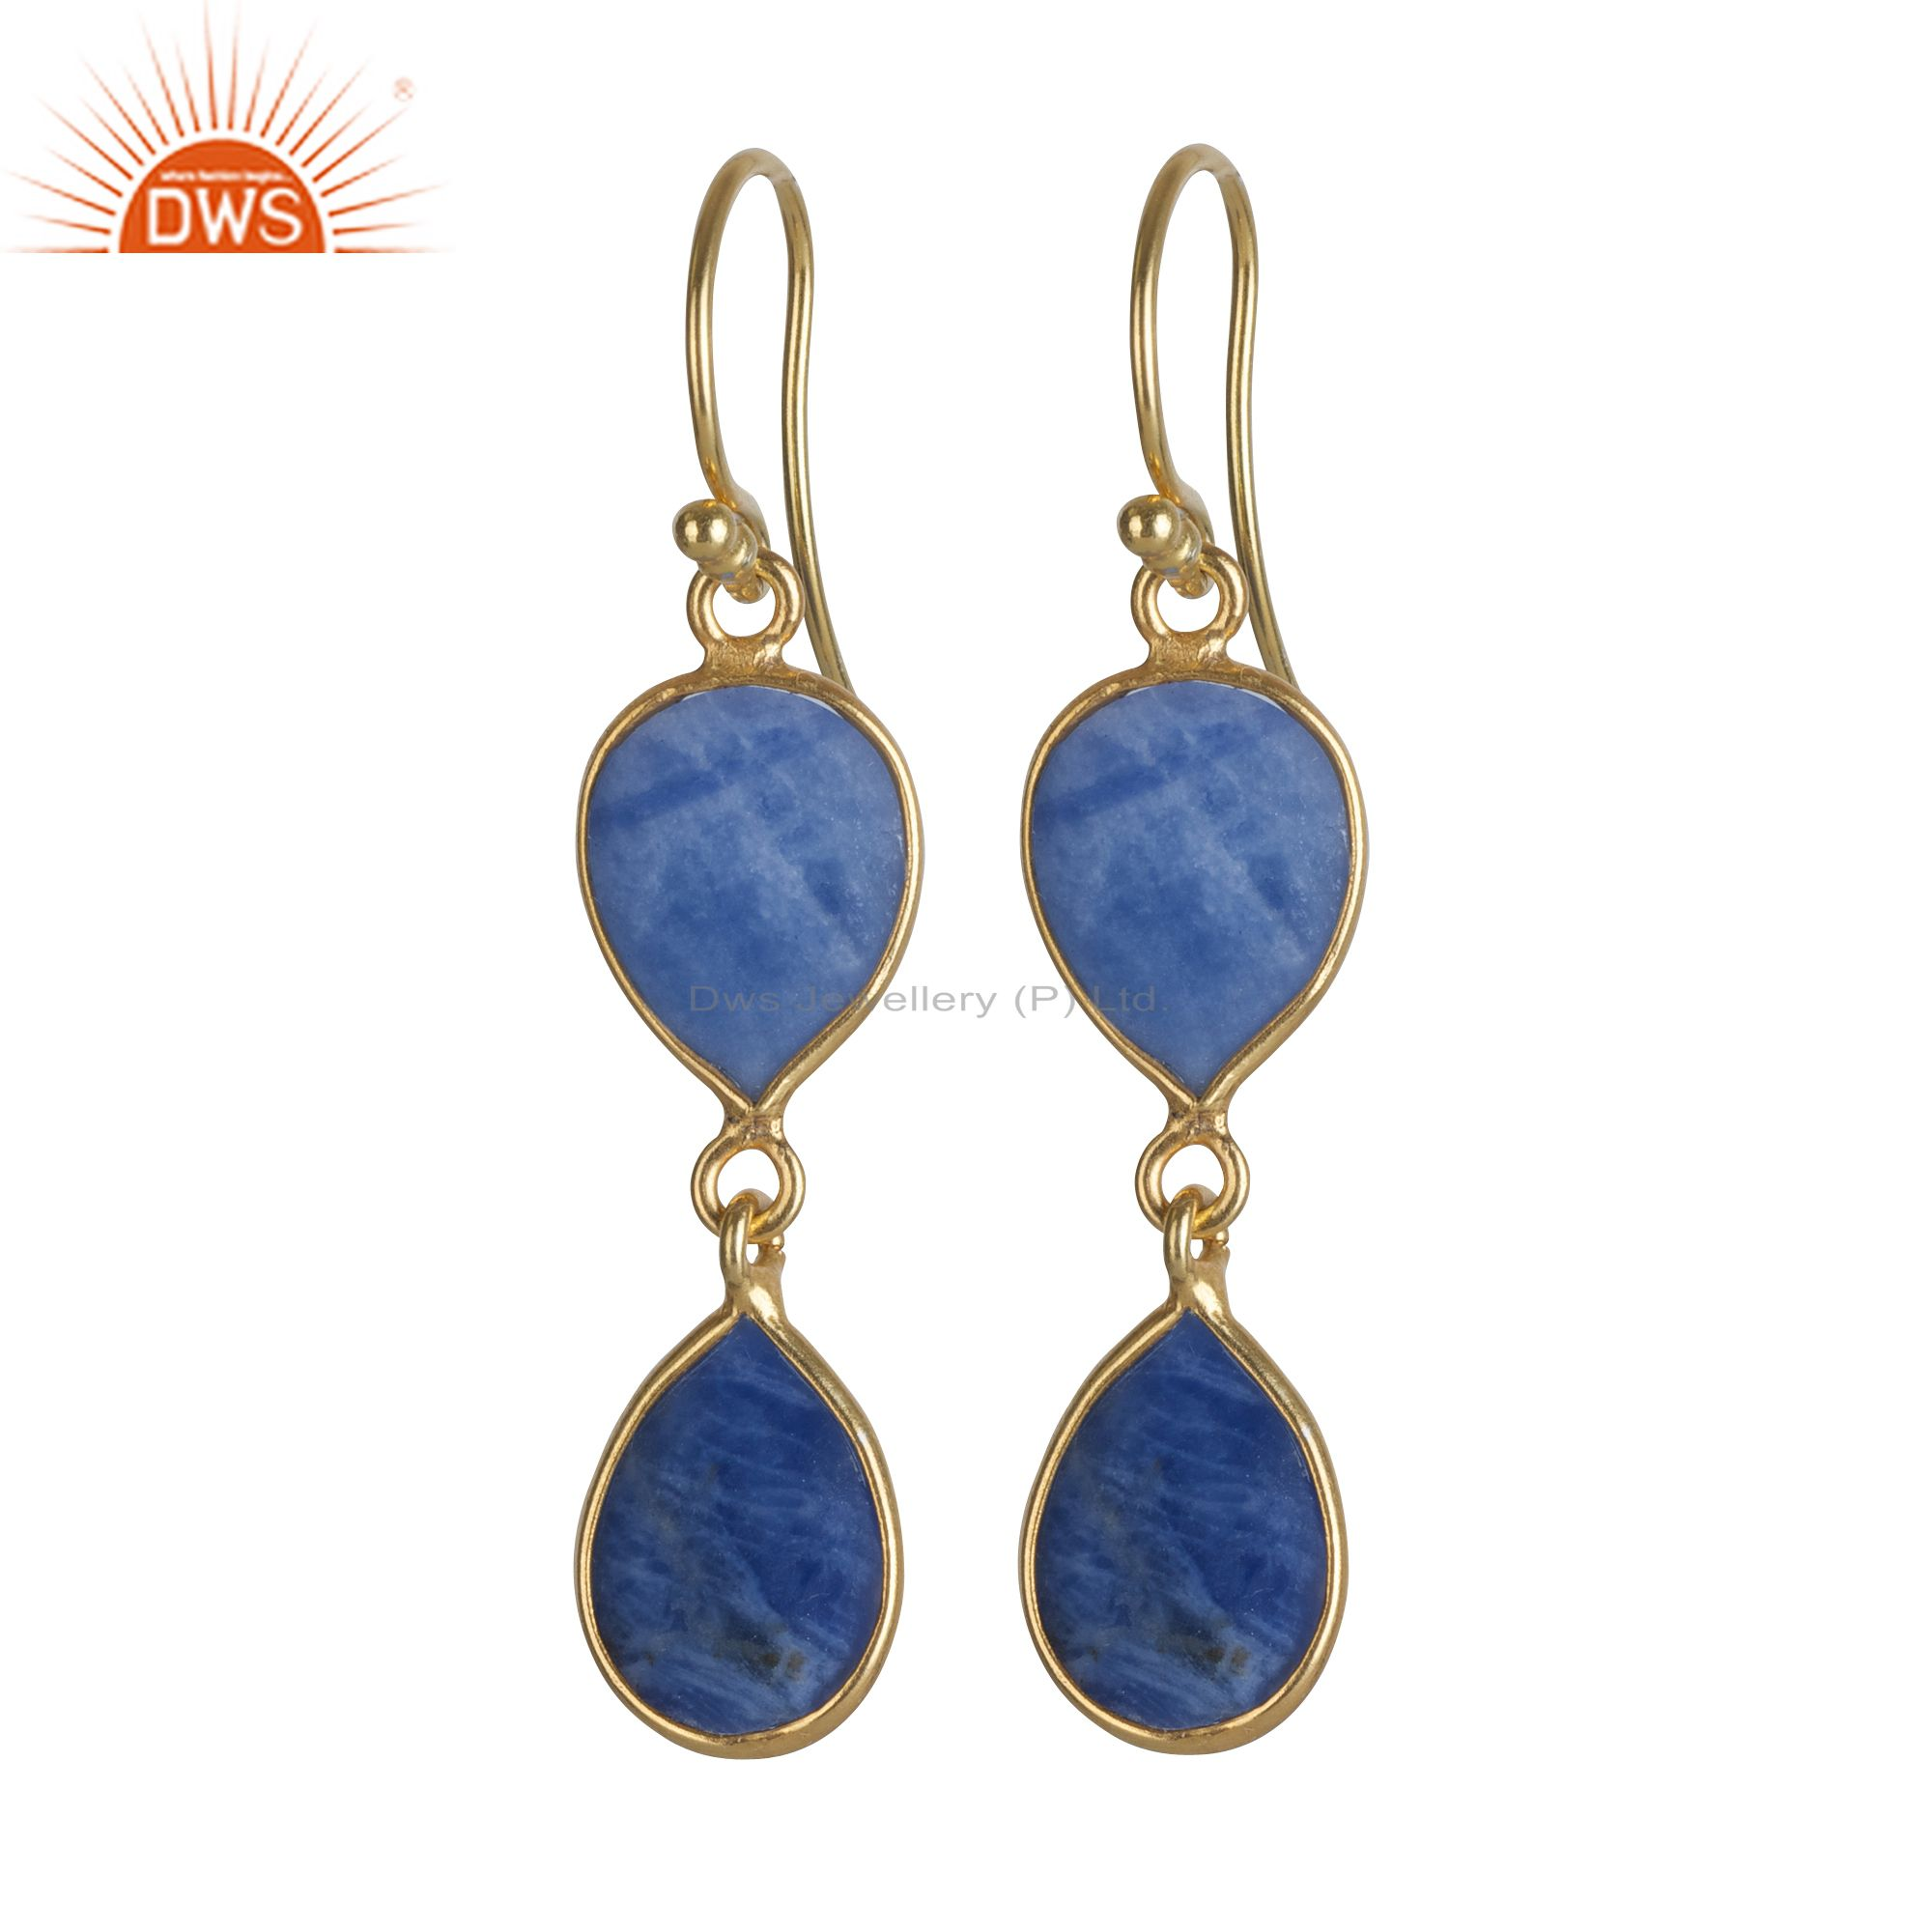 18K Yellow Gold Plated Sterling Silver Sodalite Bezel Set Double Drop Earrings